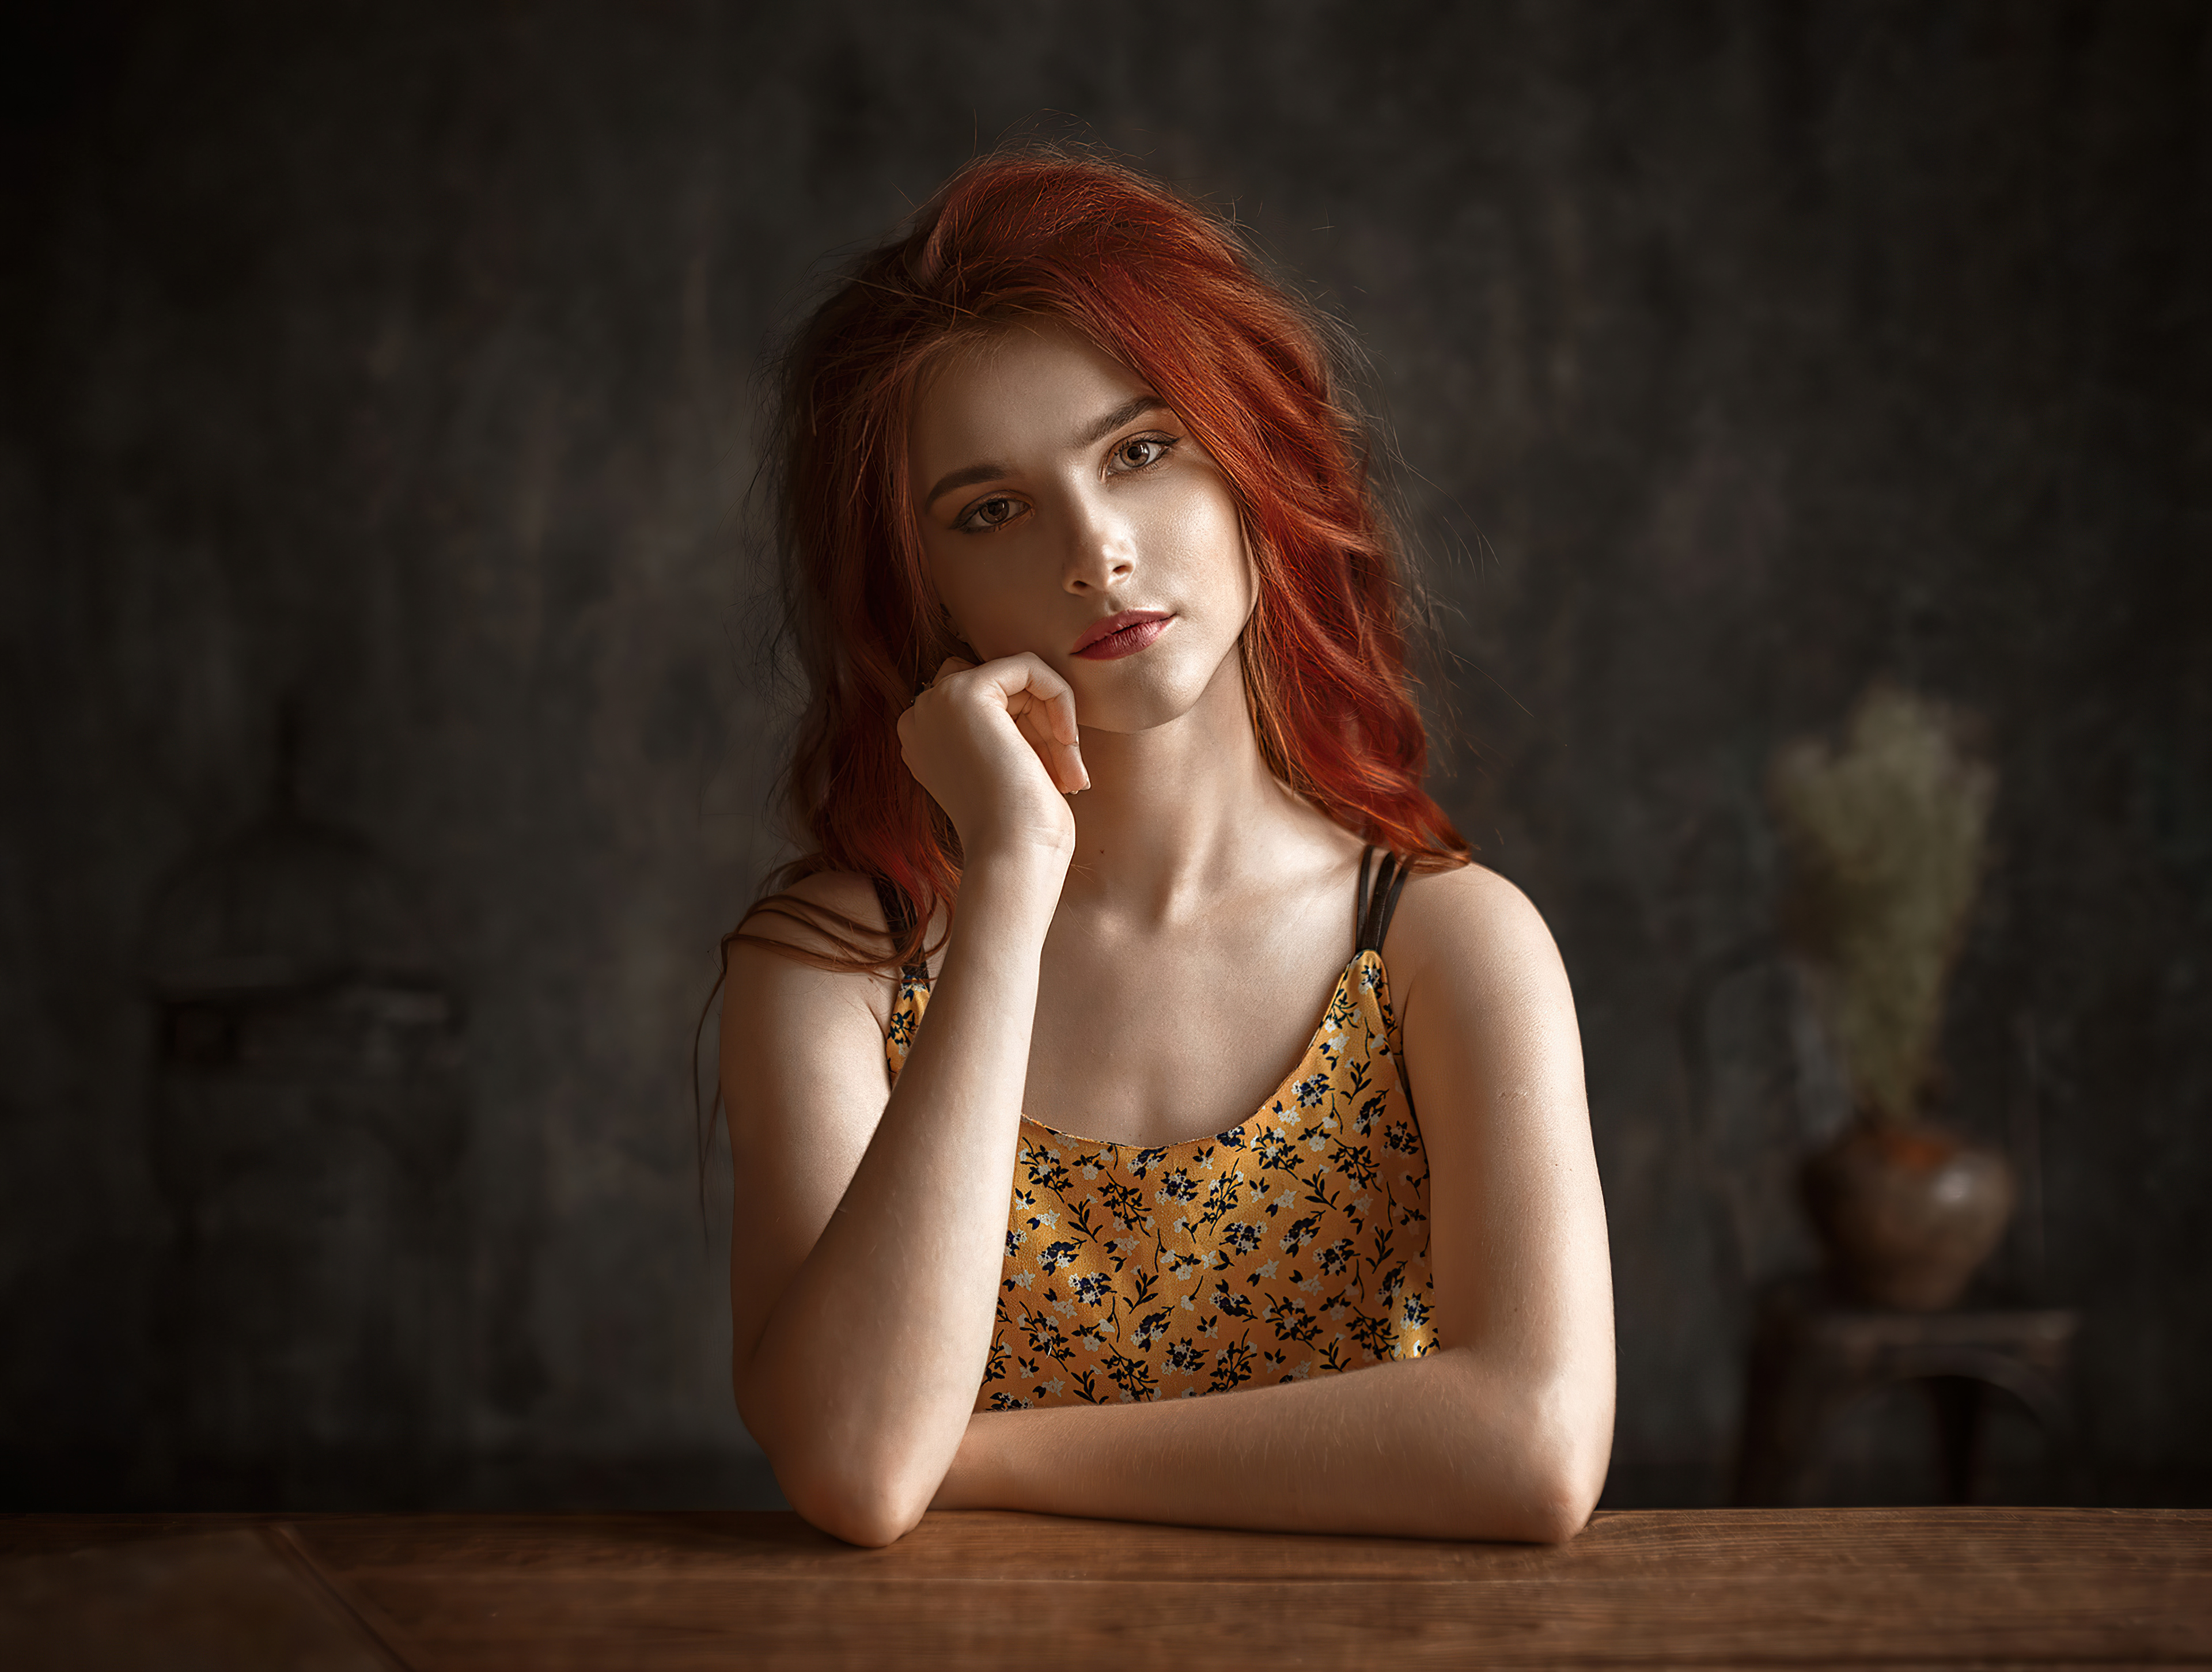 Wallpaper : women, redhead, dyed hair, simple background